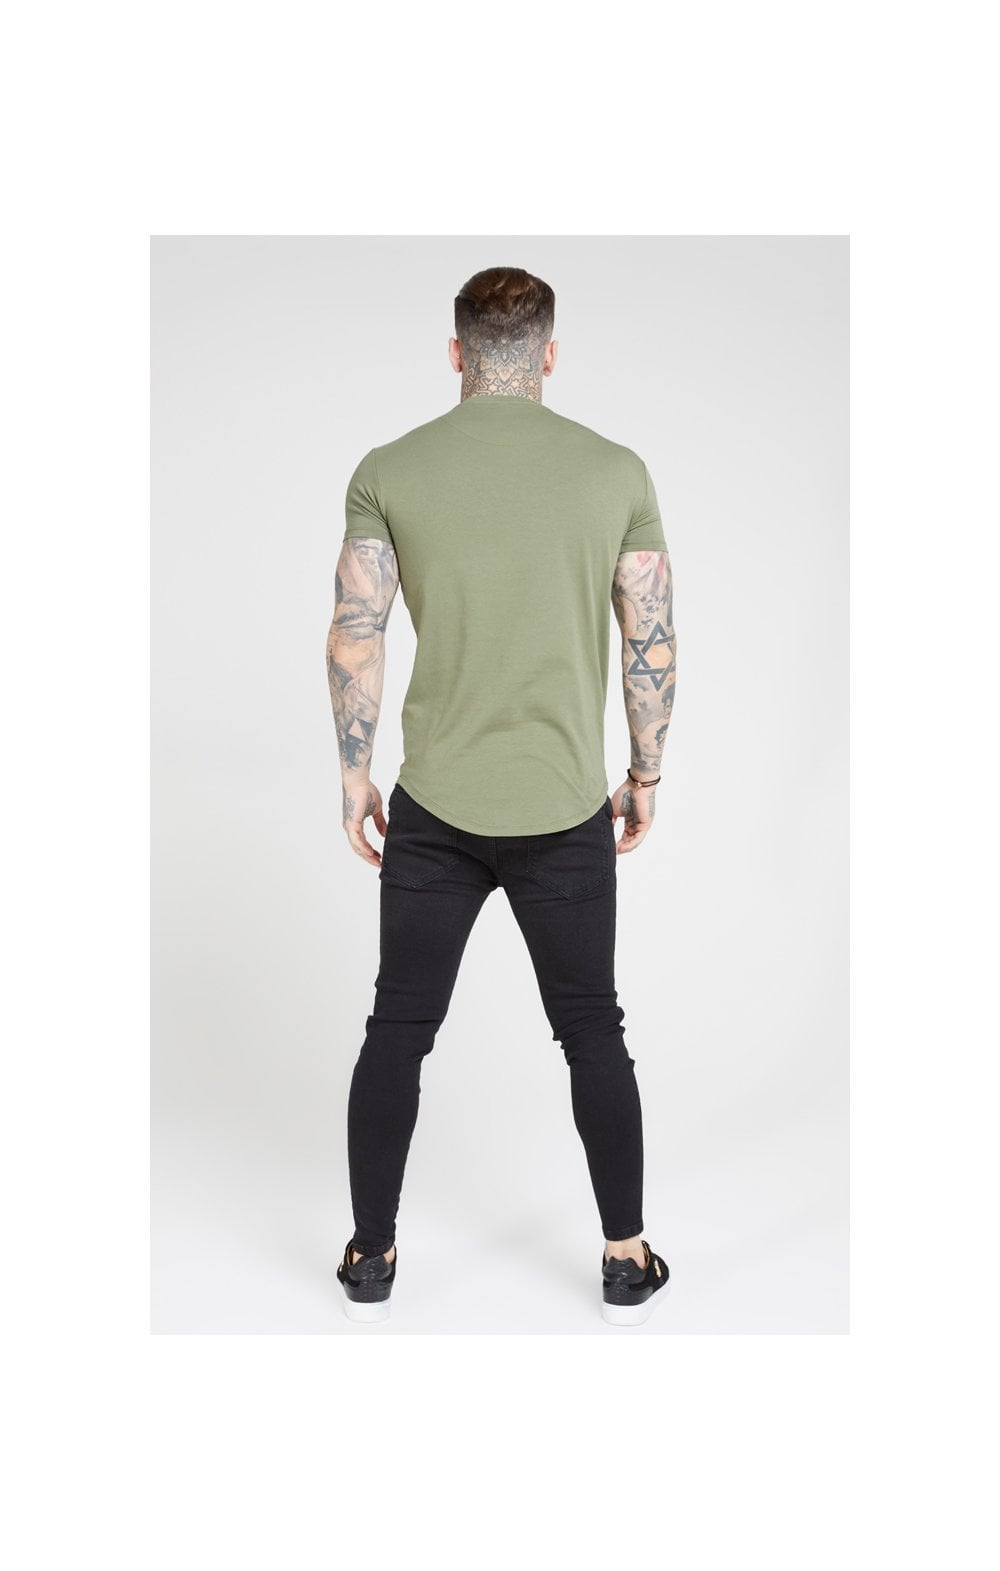 SikSilk S/S Core Gym Tee – Khaki (4)